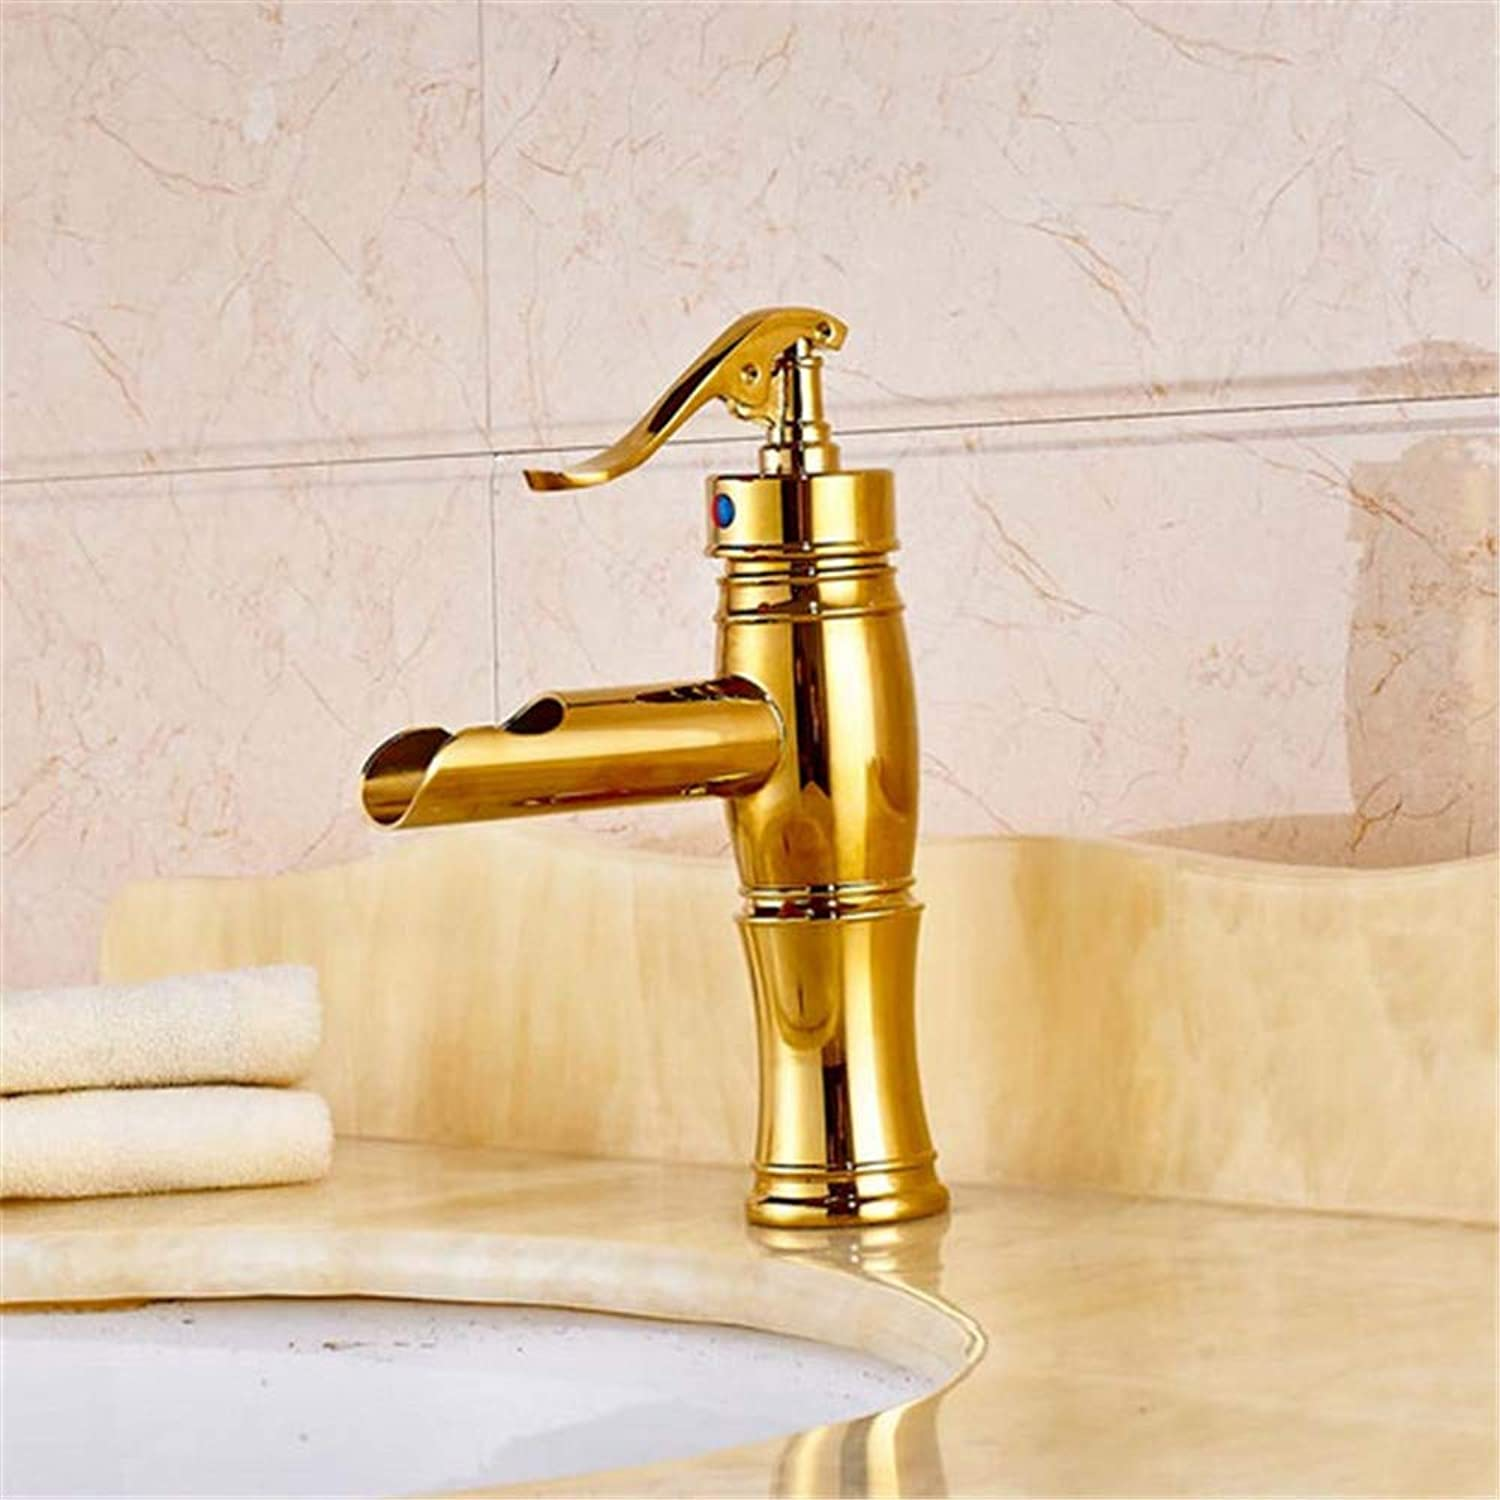 Sink Chrome-Plated Brass New Style Bathroom Sink Faucet Single Handle Mixer Tap gold Finished